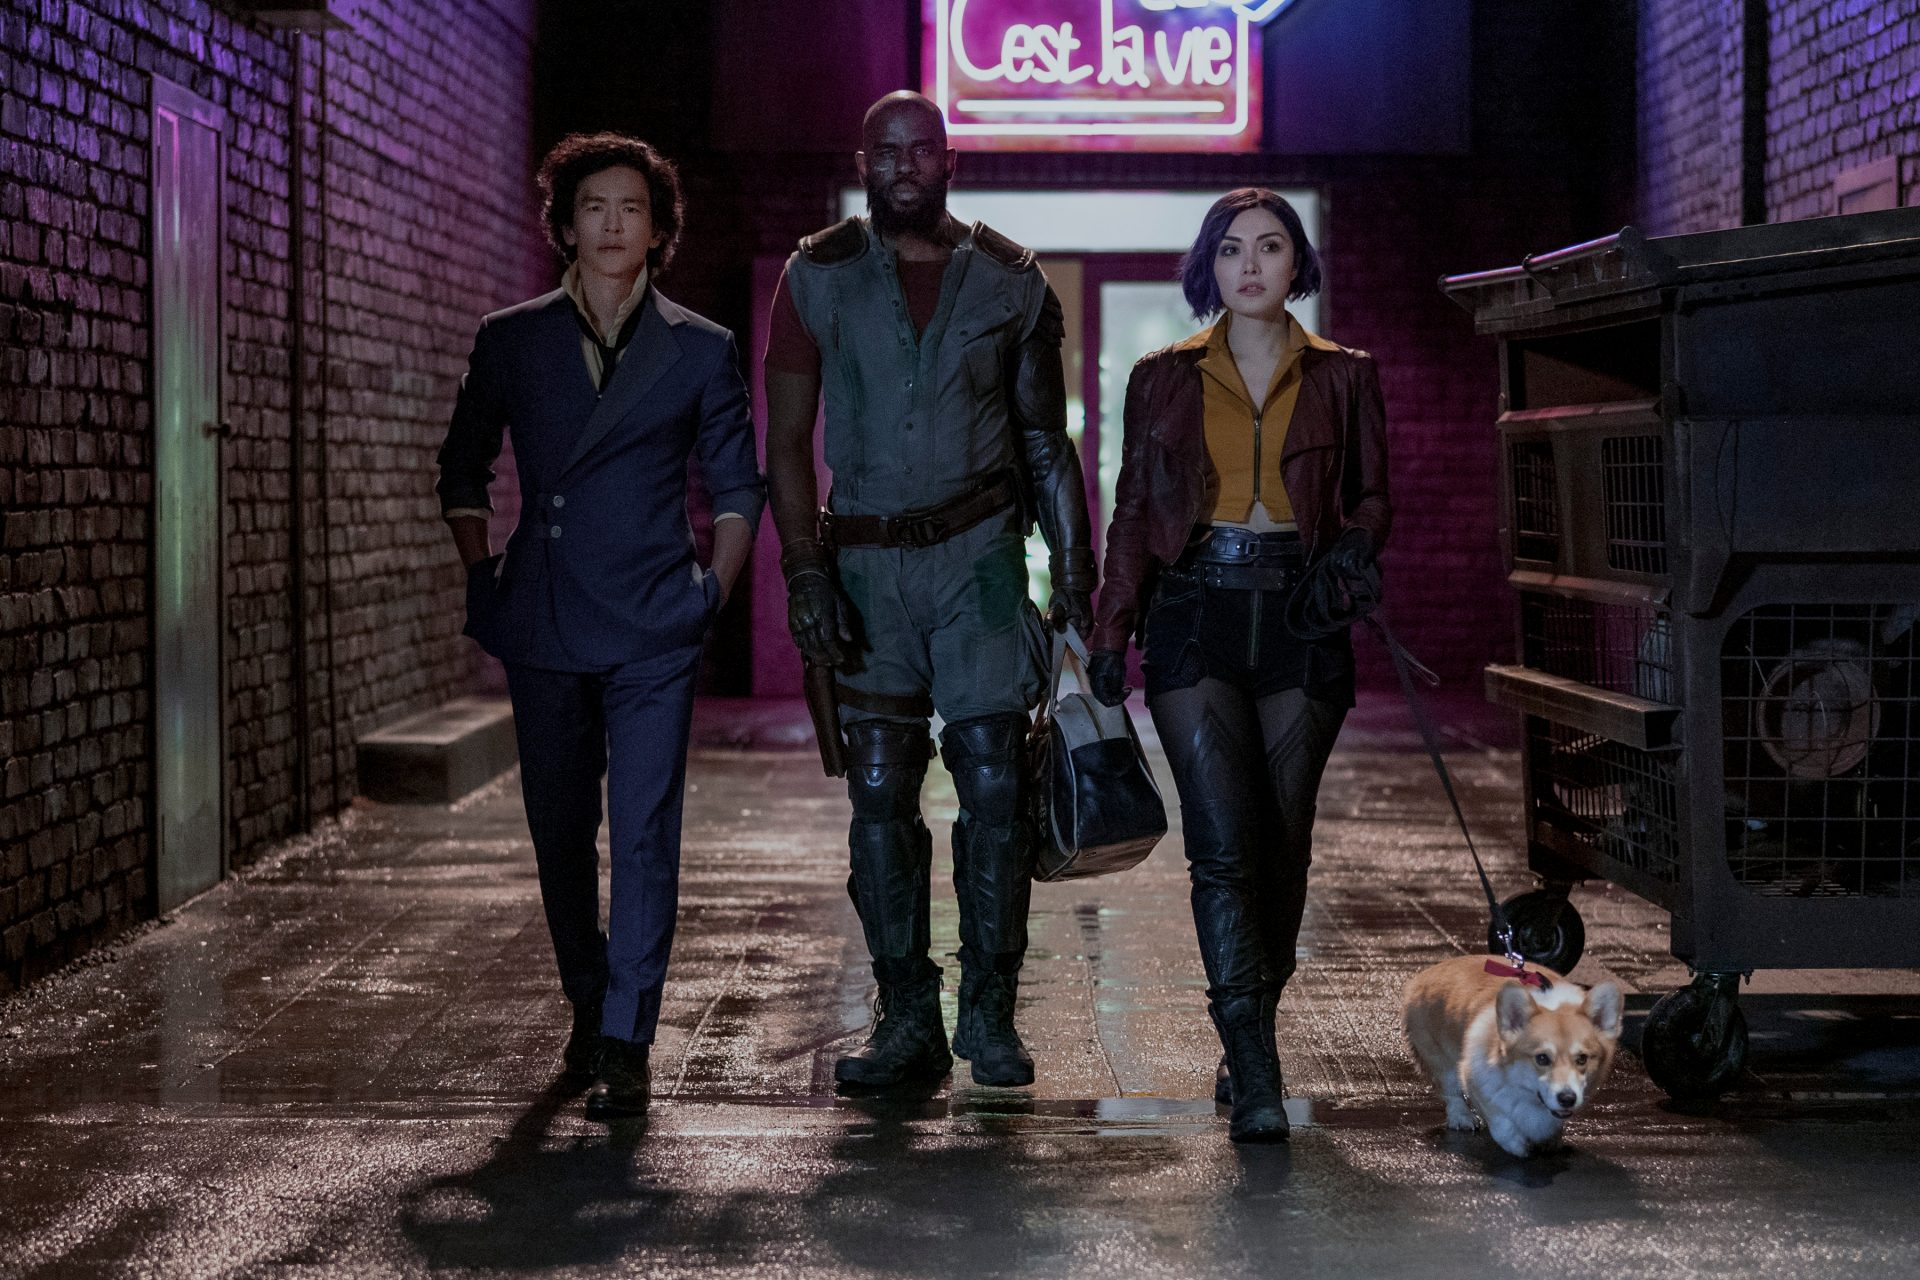 Spike, Jet, and Faye walking with Ein in an alley in Cowboy Bebop